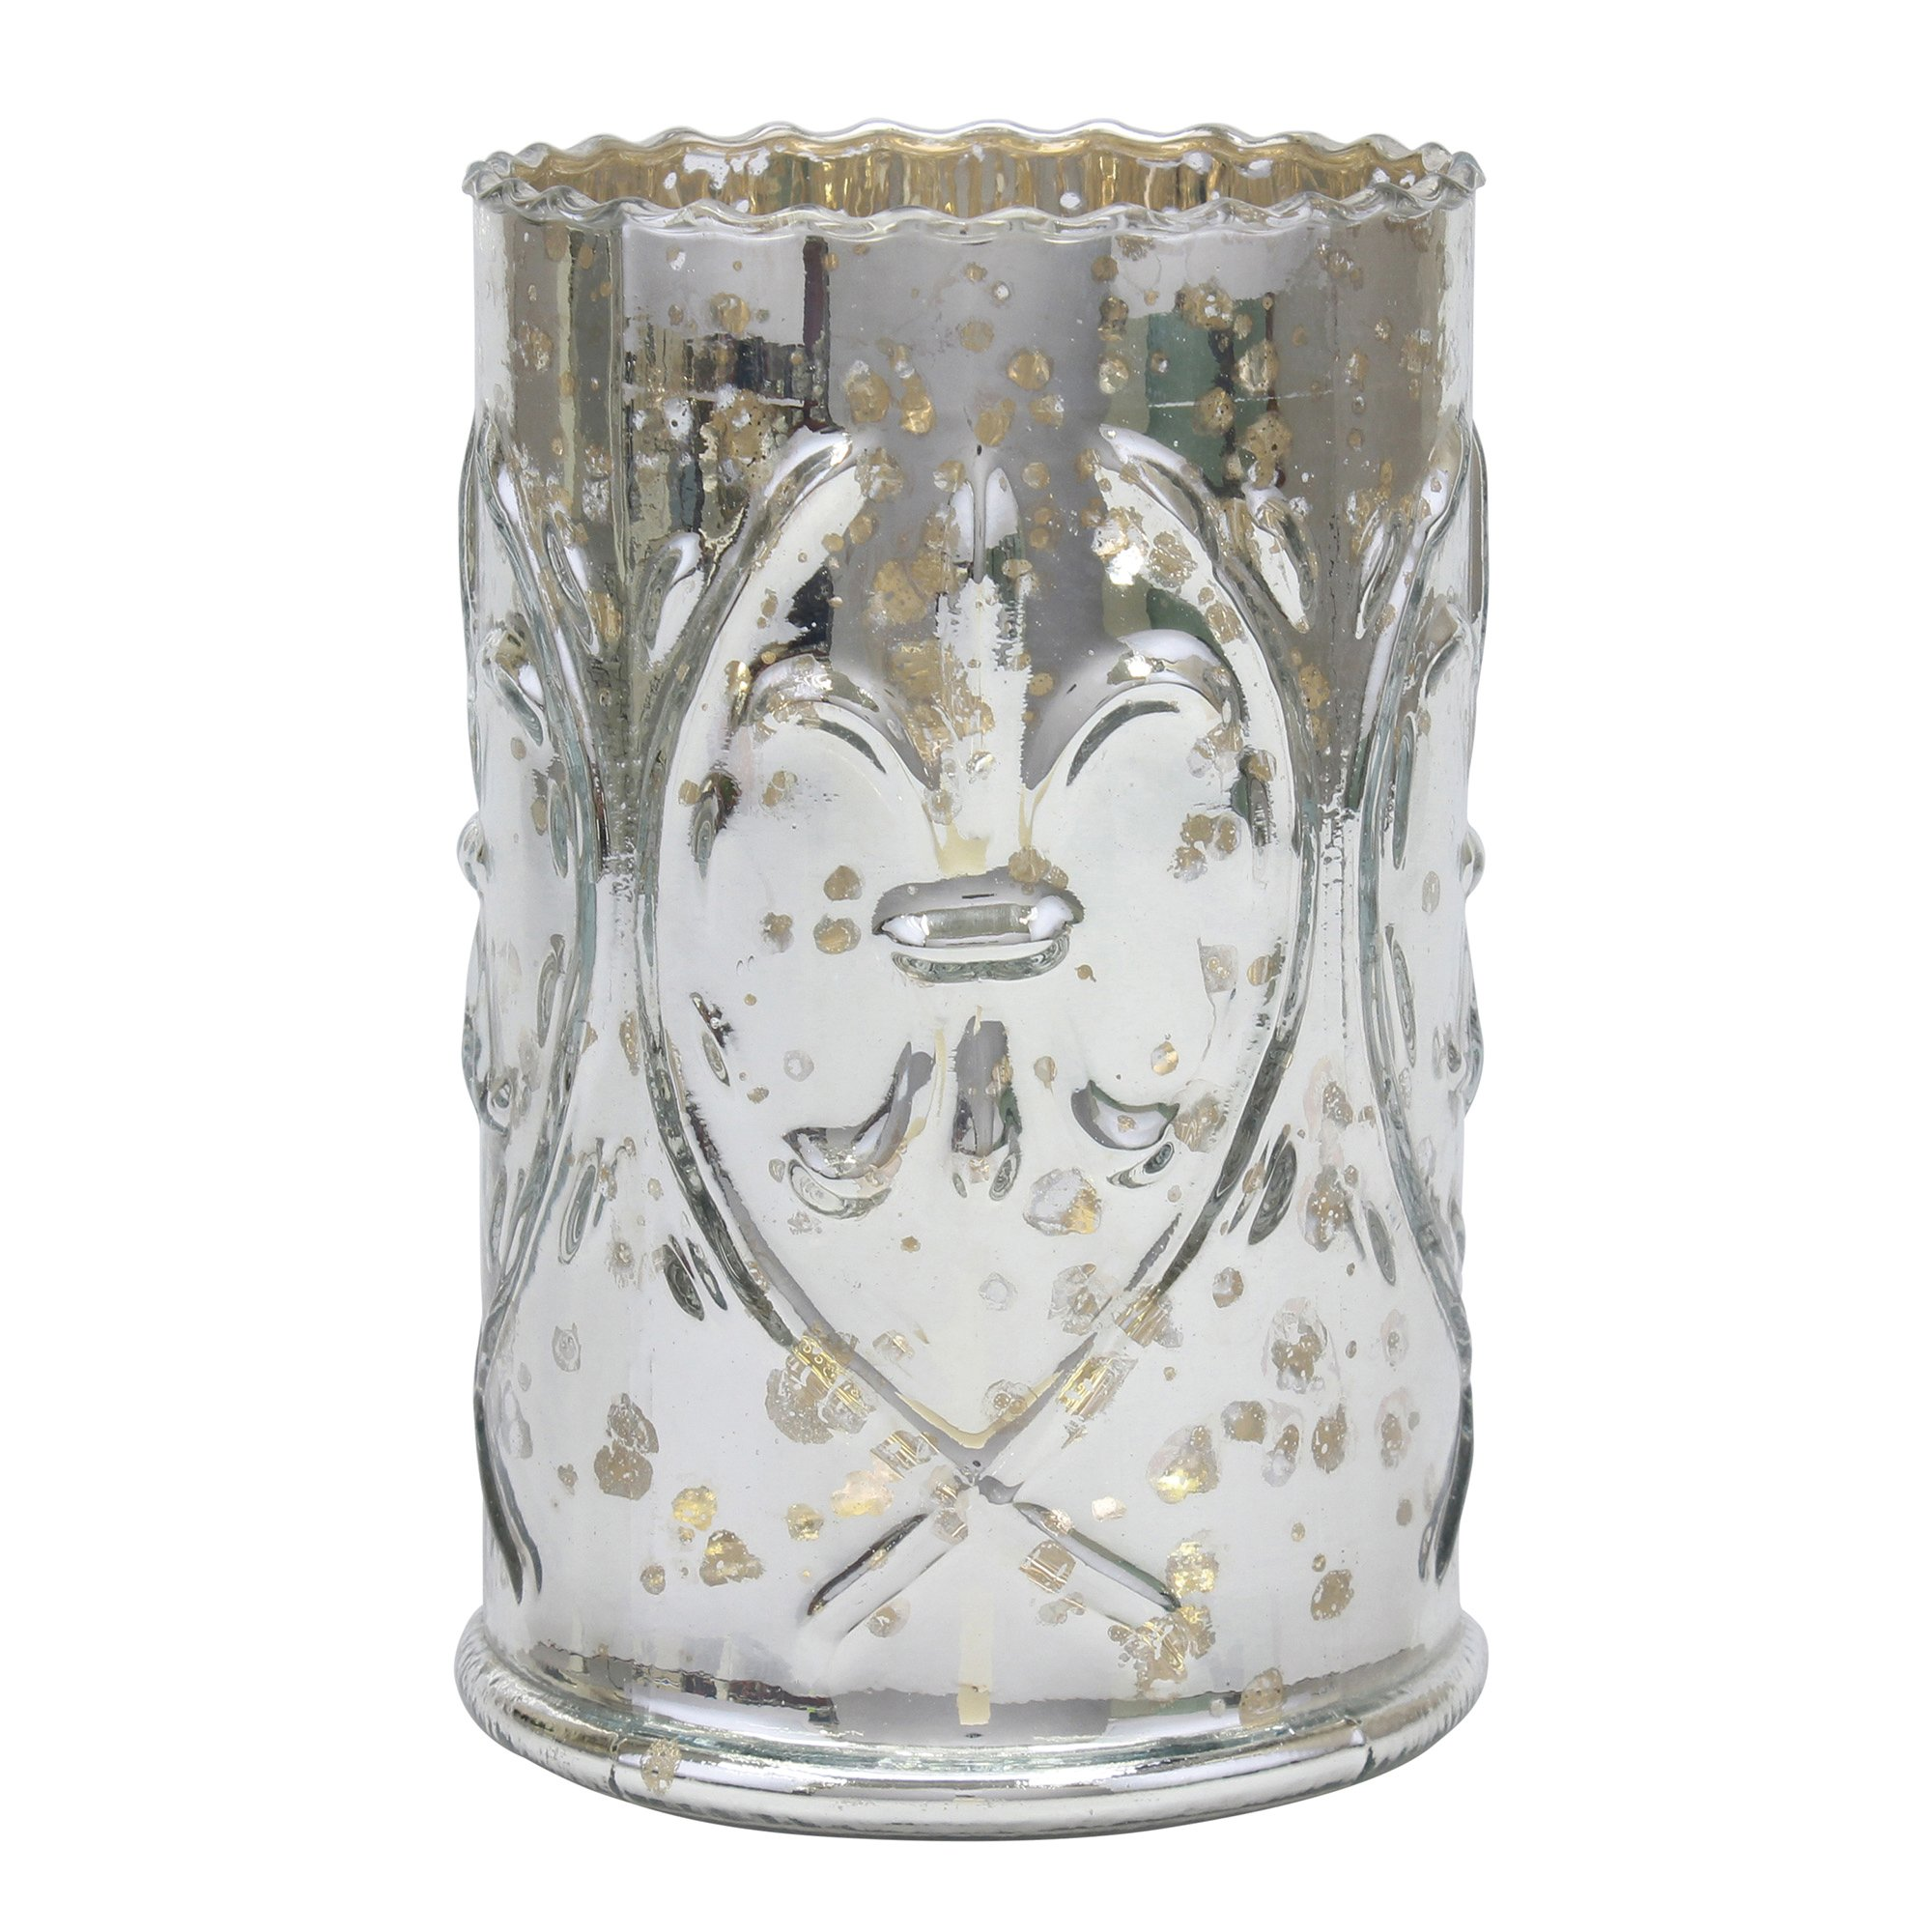 Stonebriar Decorative Antique Silver Mercury Glass Pillar Candle Holder, Vintage Home Decor, for Wedding Decorations, Table Centerpiece for Parties, and Everyday Shelf or Mantel Decor